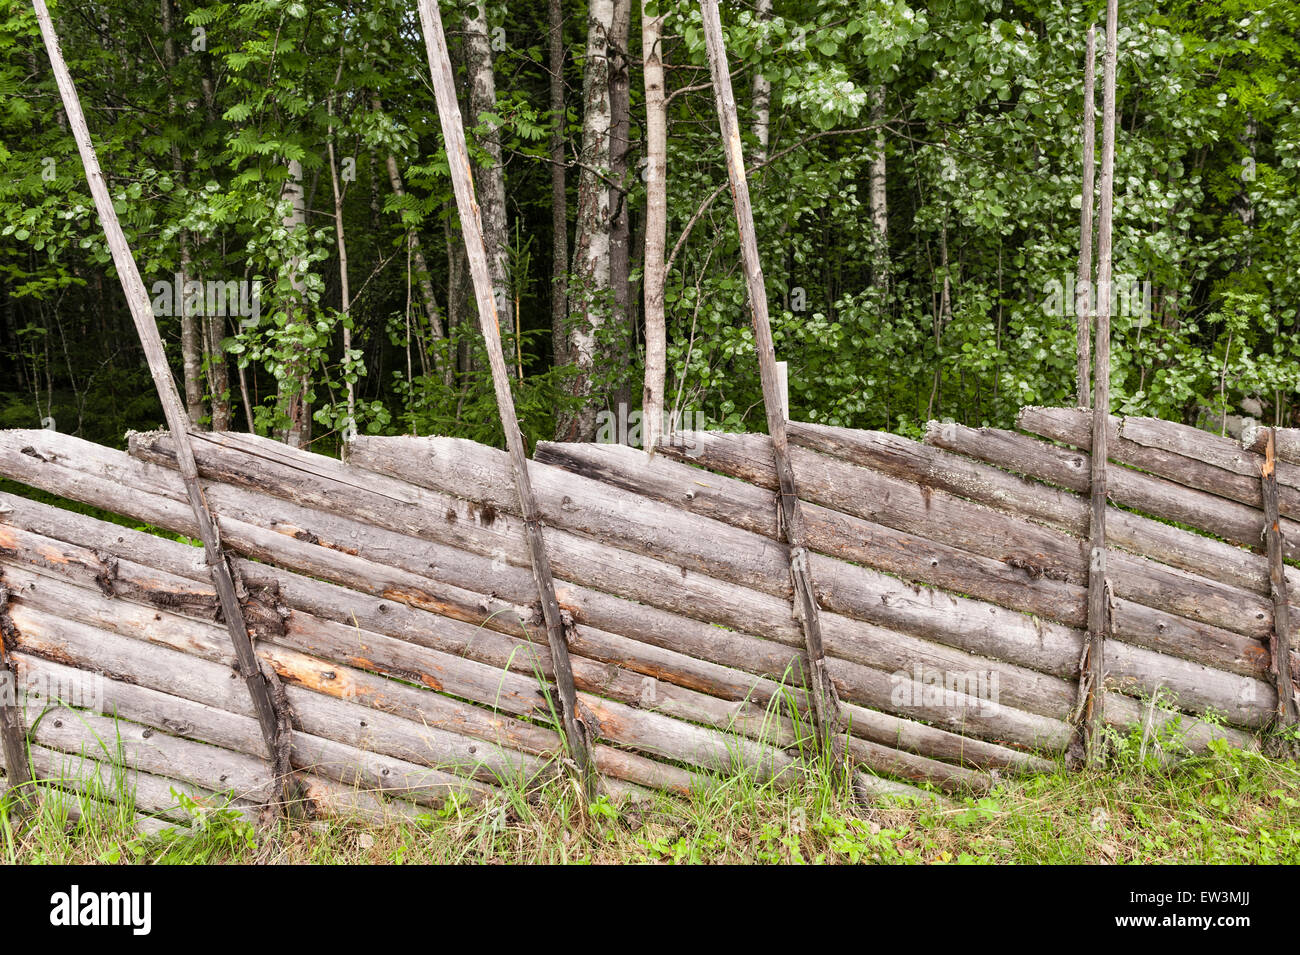 Norway. A traditional wooden fence on a summer farm (sæter or seter) in the rural Gudbrandsdalen Valley area - Stock Image